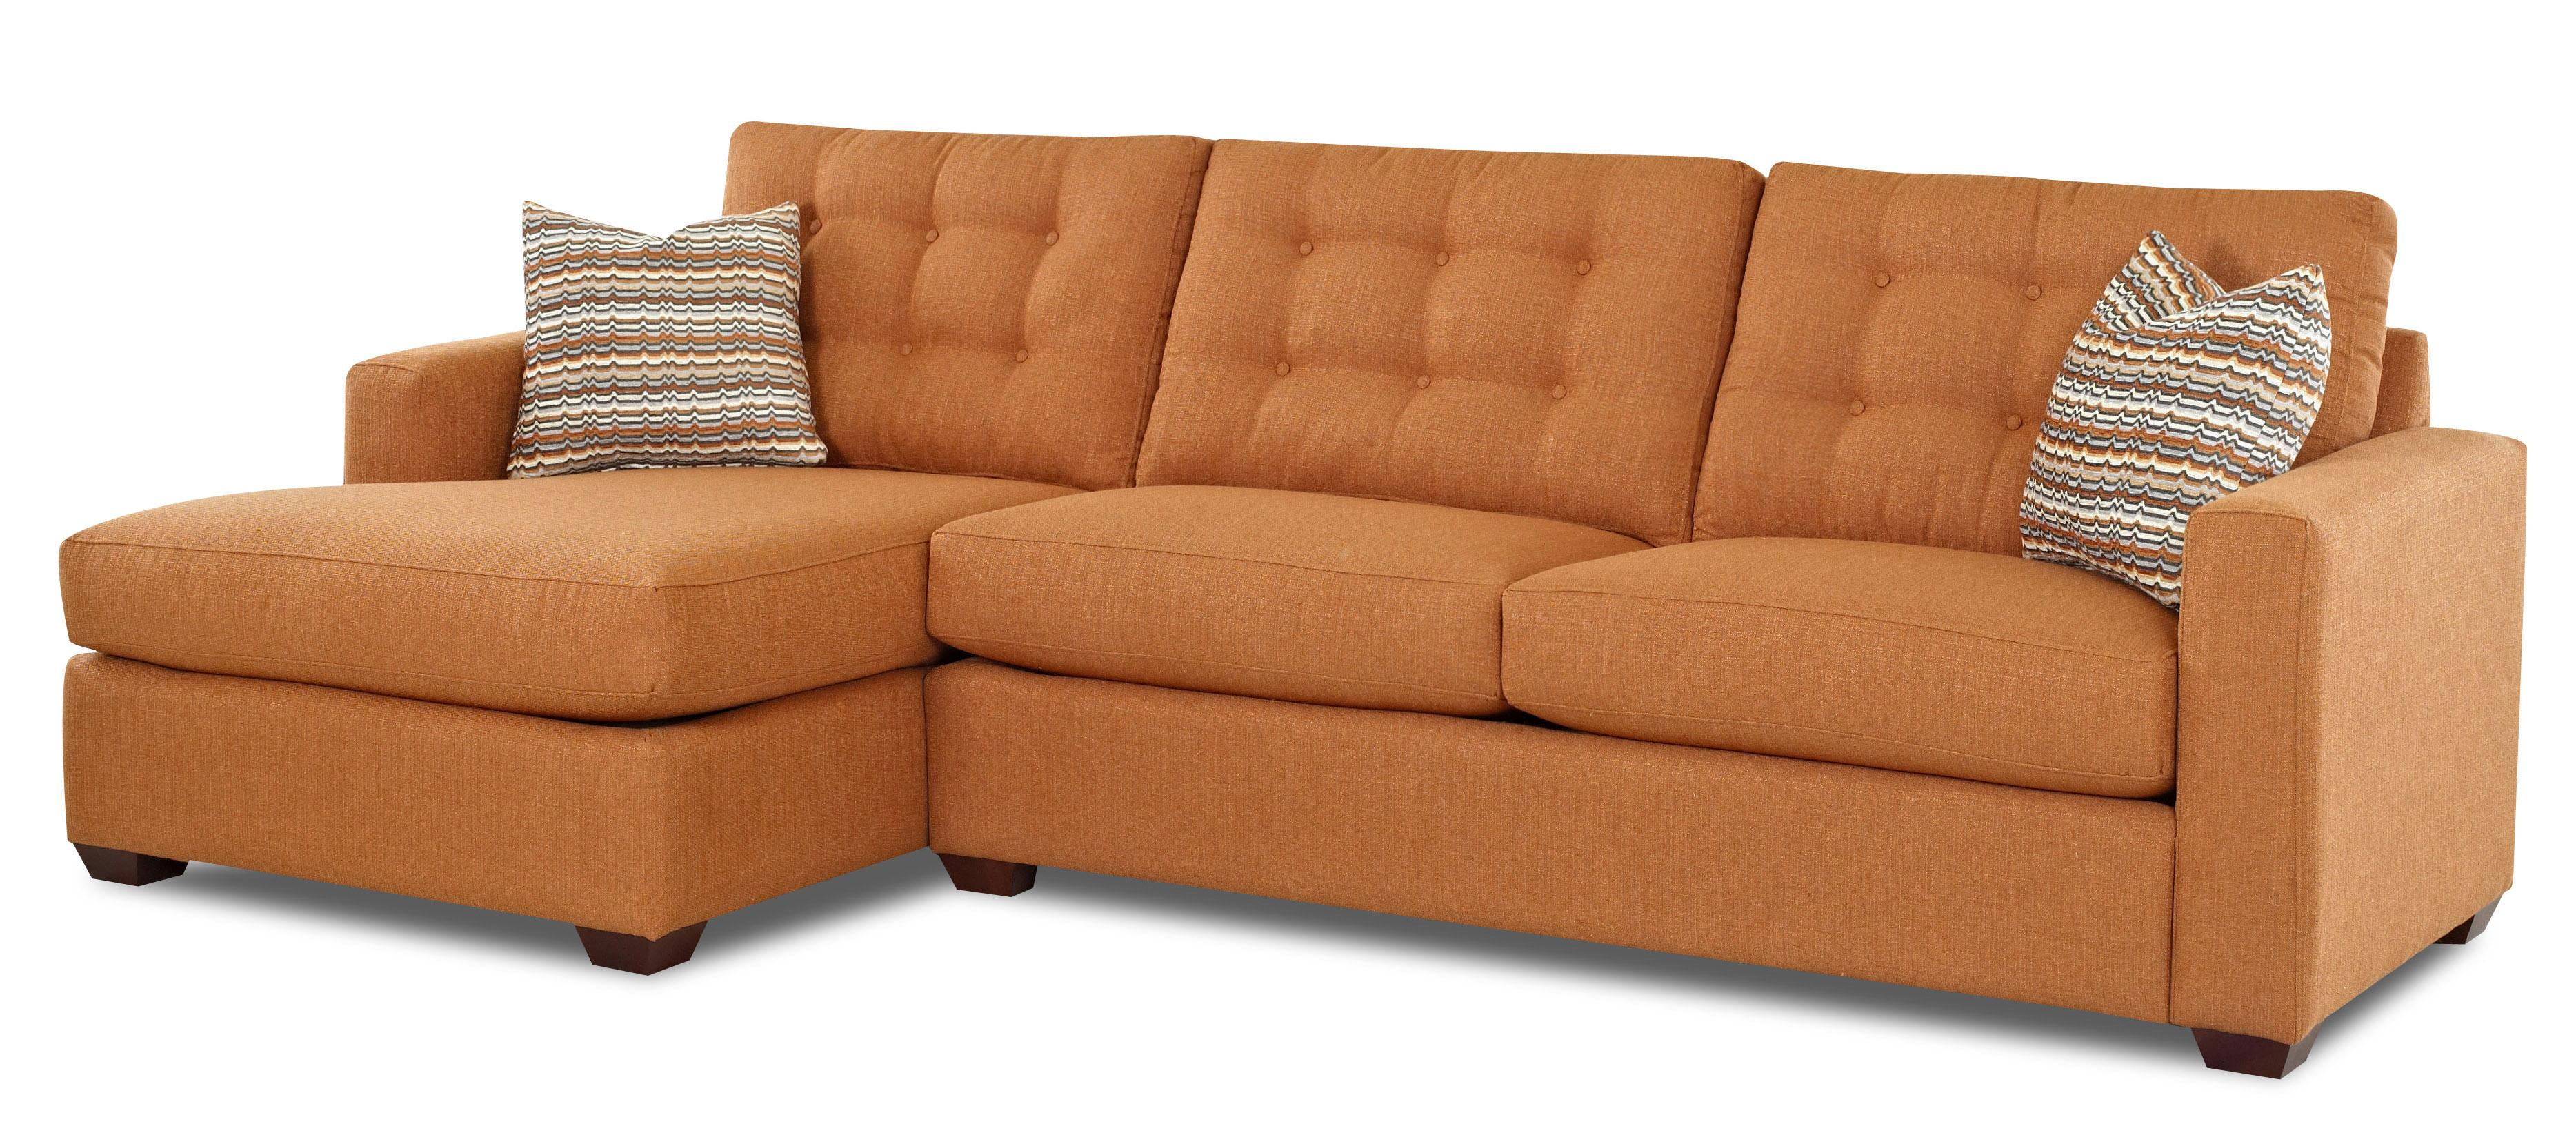 Klaussner Lido Contemporary Sectional Sofa with Left Facing Chaise